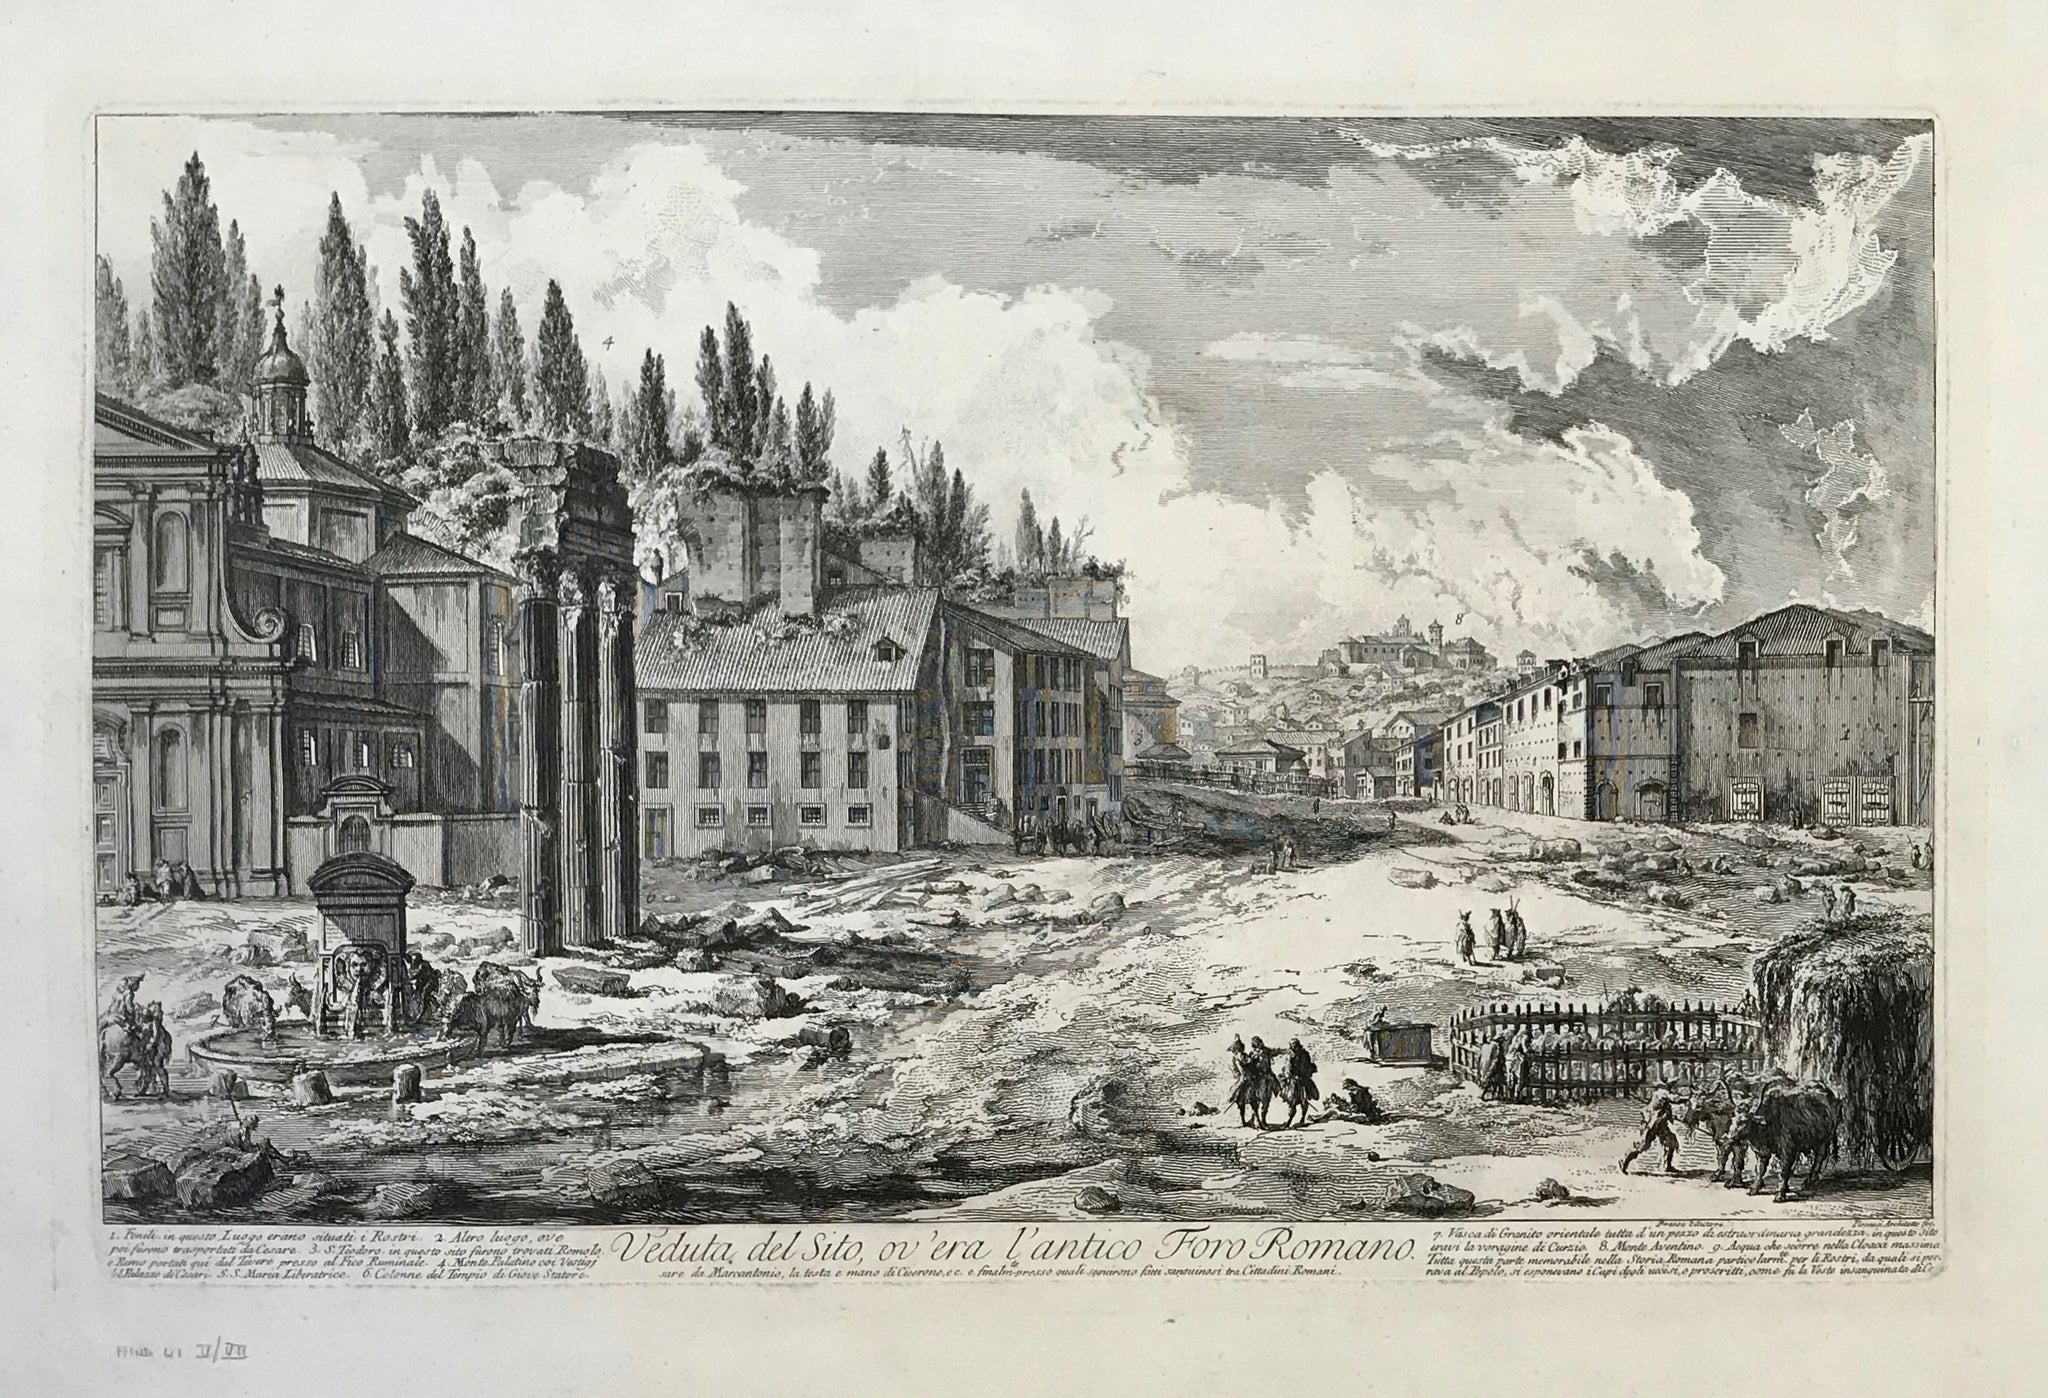 "Veduta del Sito, ov'era l'antico Foro Romano  Hind 41 V / VII  On either side of the title are descriptions with numbers corresponding to those in the image. The buildings, Monte Aventino and the piazza are described.  Print is from the First Paris Edition (1800 - 1807) and has very wide margins. Hardly any spots in margins. A few nearly invisible creases in lower margin.  38.5 x 59 cm (15.1 x 23.2 "")  Piranesi - Vedute di Roma  Piranesi, Giovanni Battista"